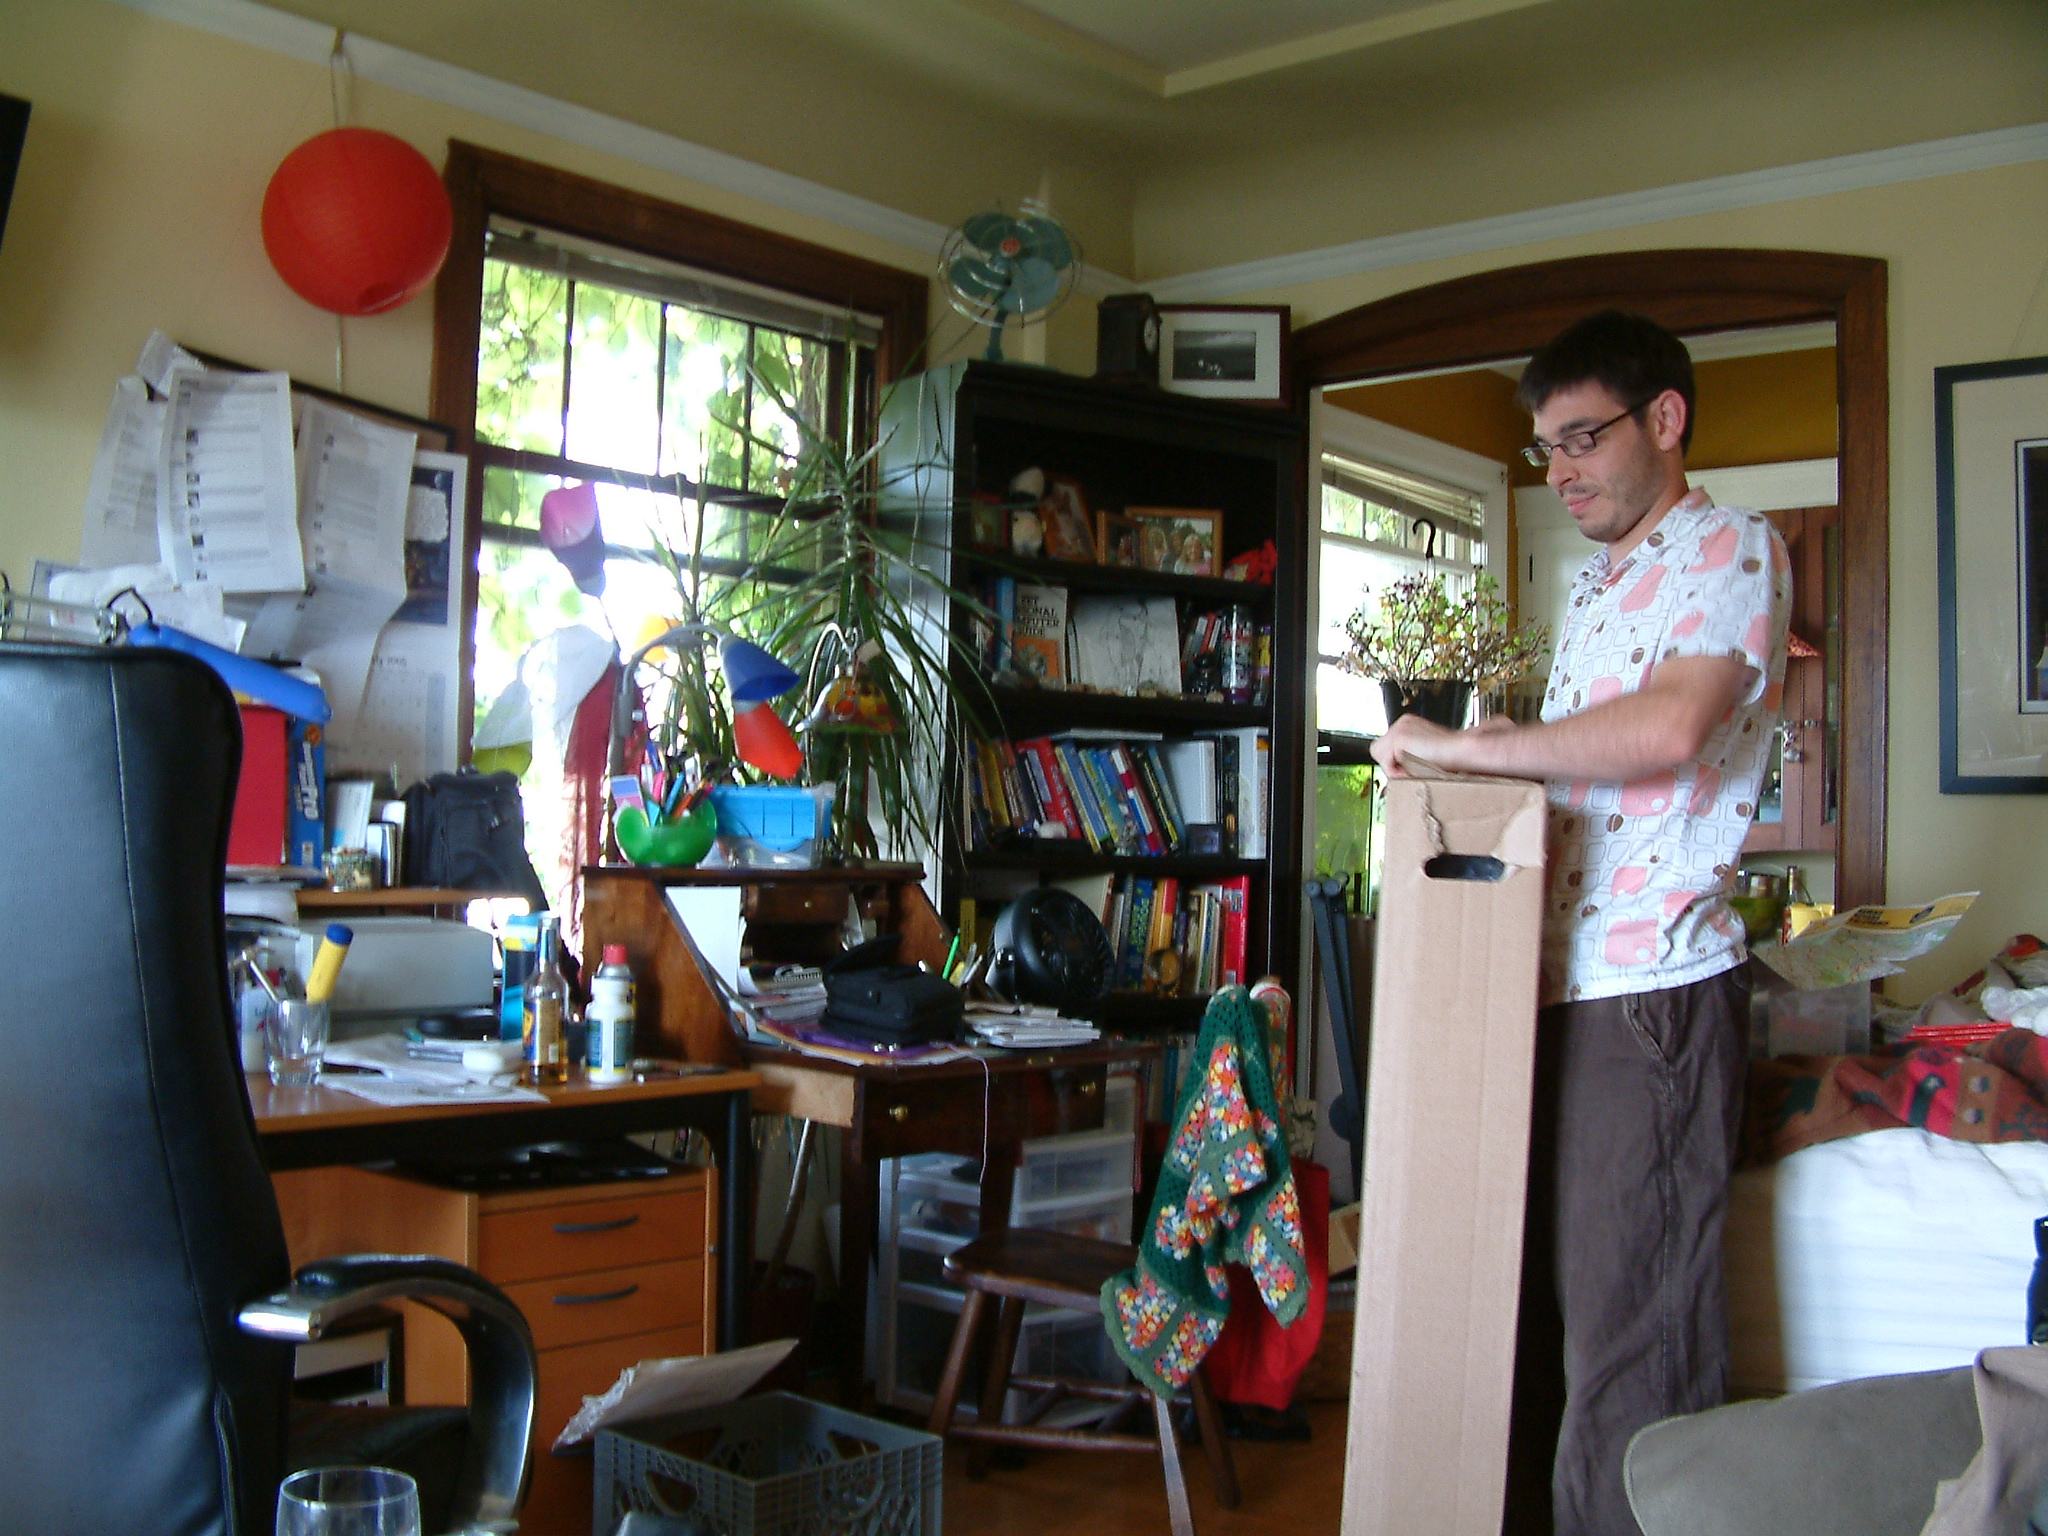 This is my studio apartment just before we moved into a bigger place.